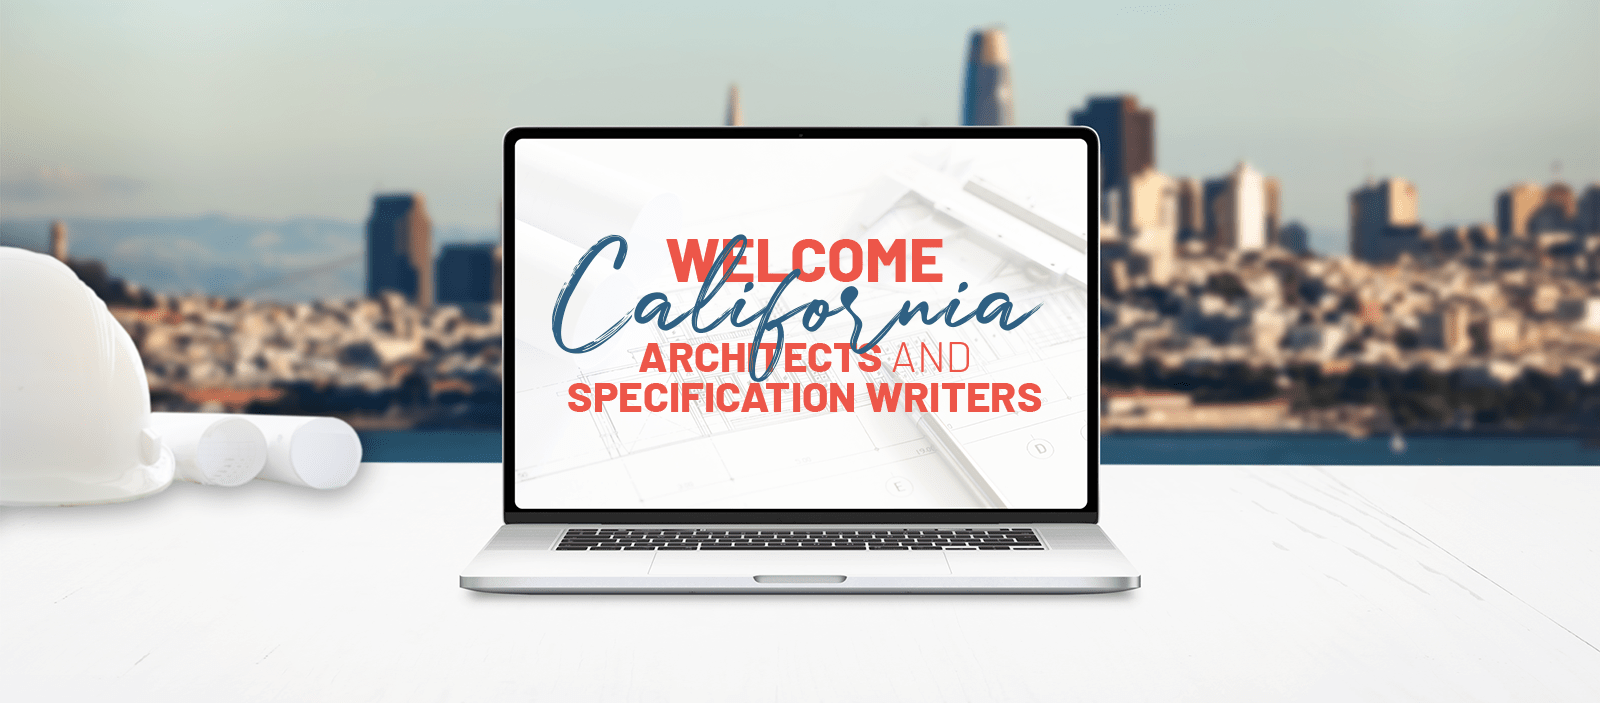 City background with a laptop and a text of Welcome California architects and specification writers offer custom designs.